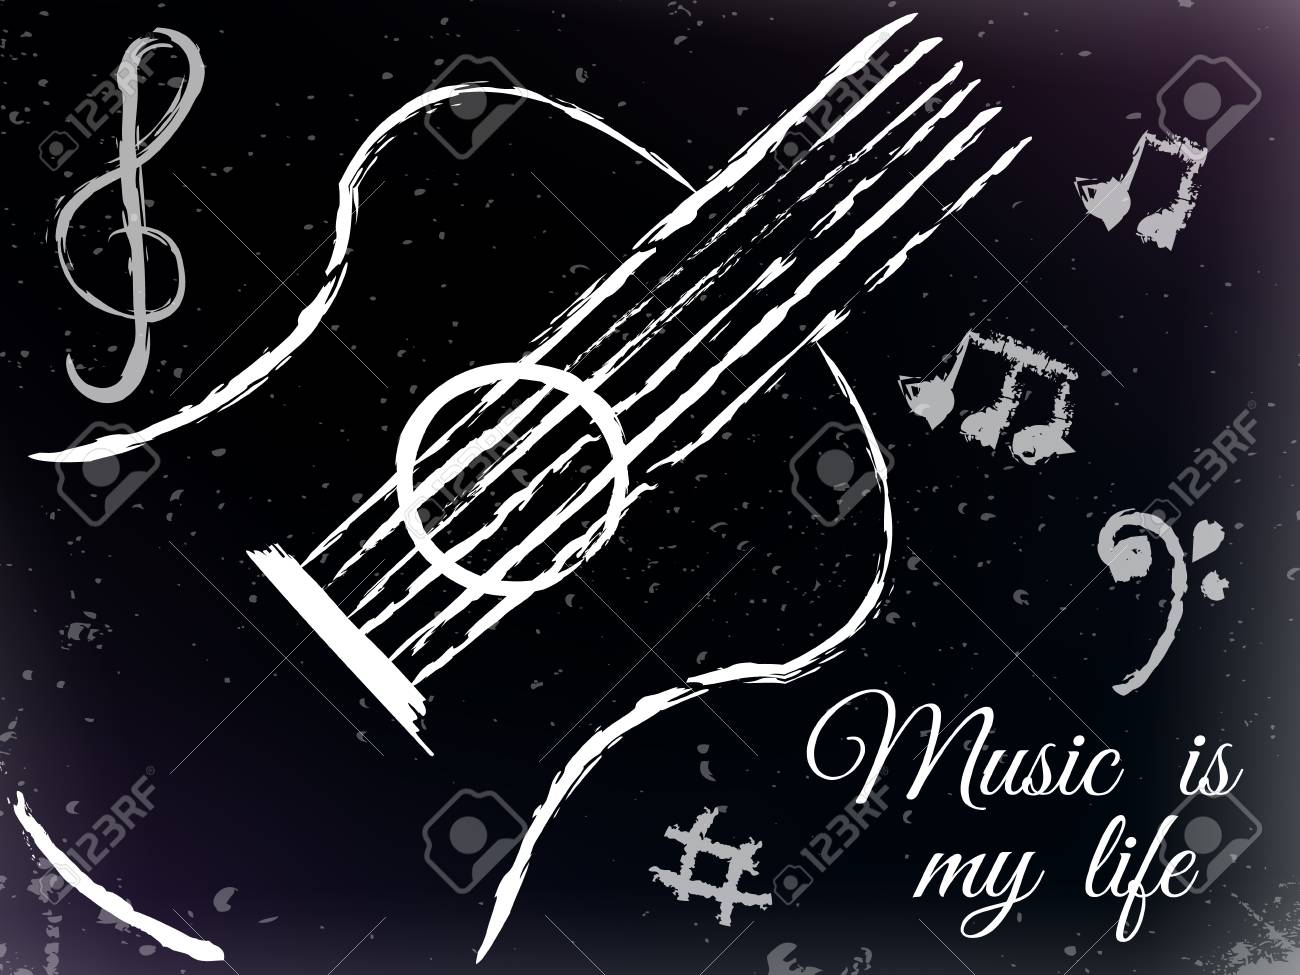 -music-is-my-life-